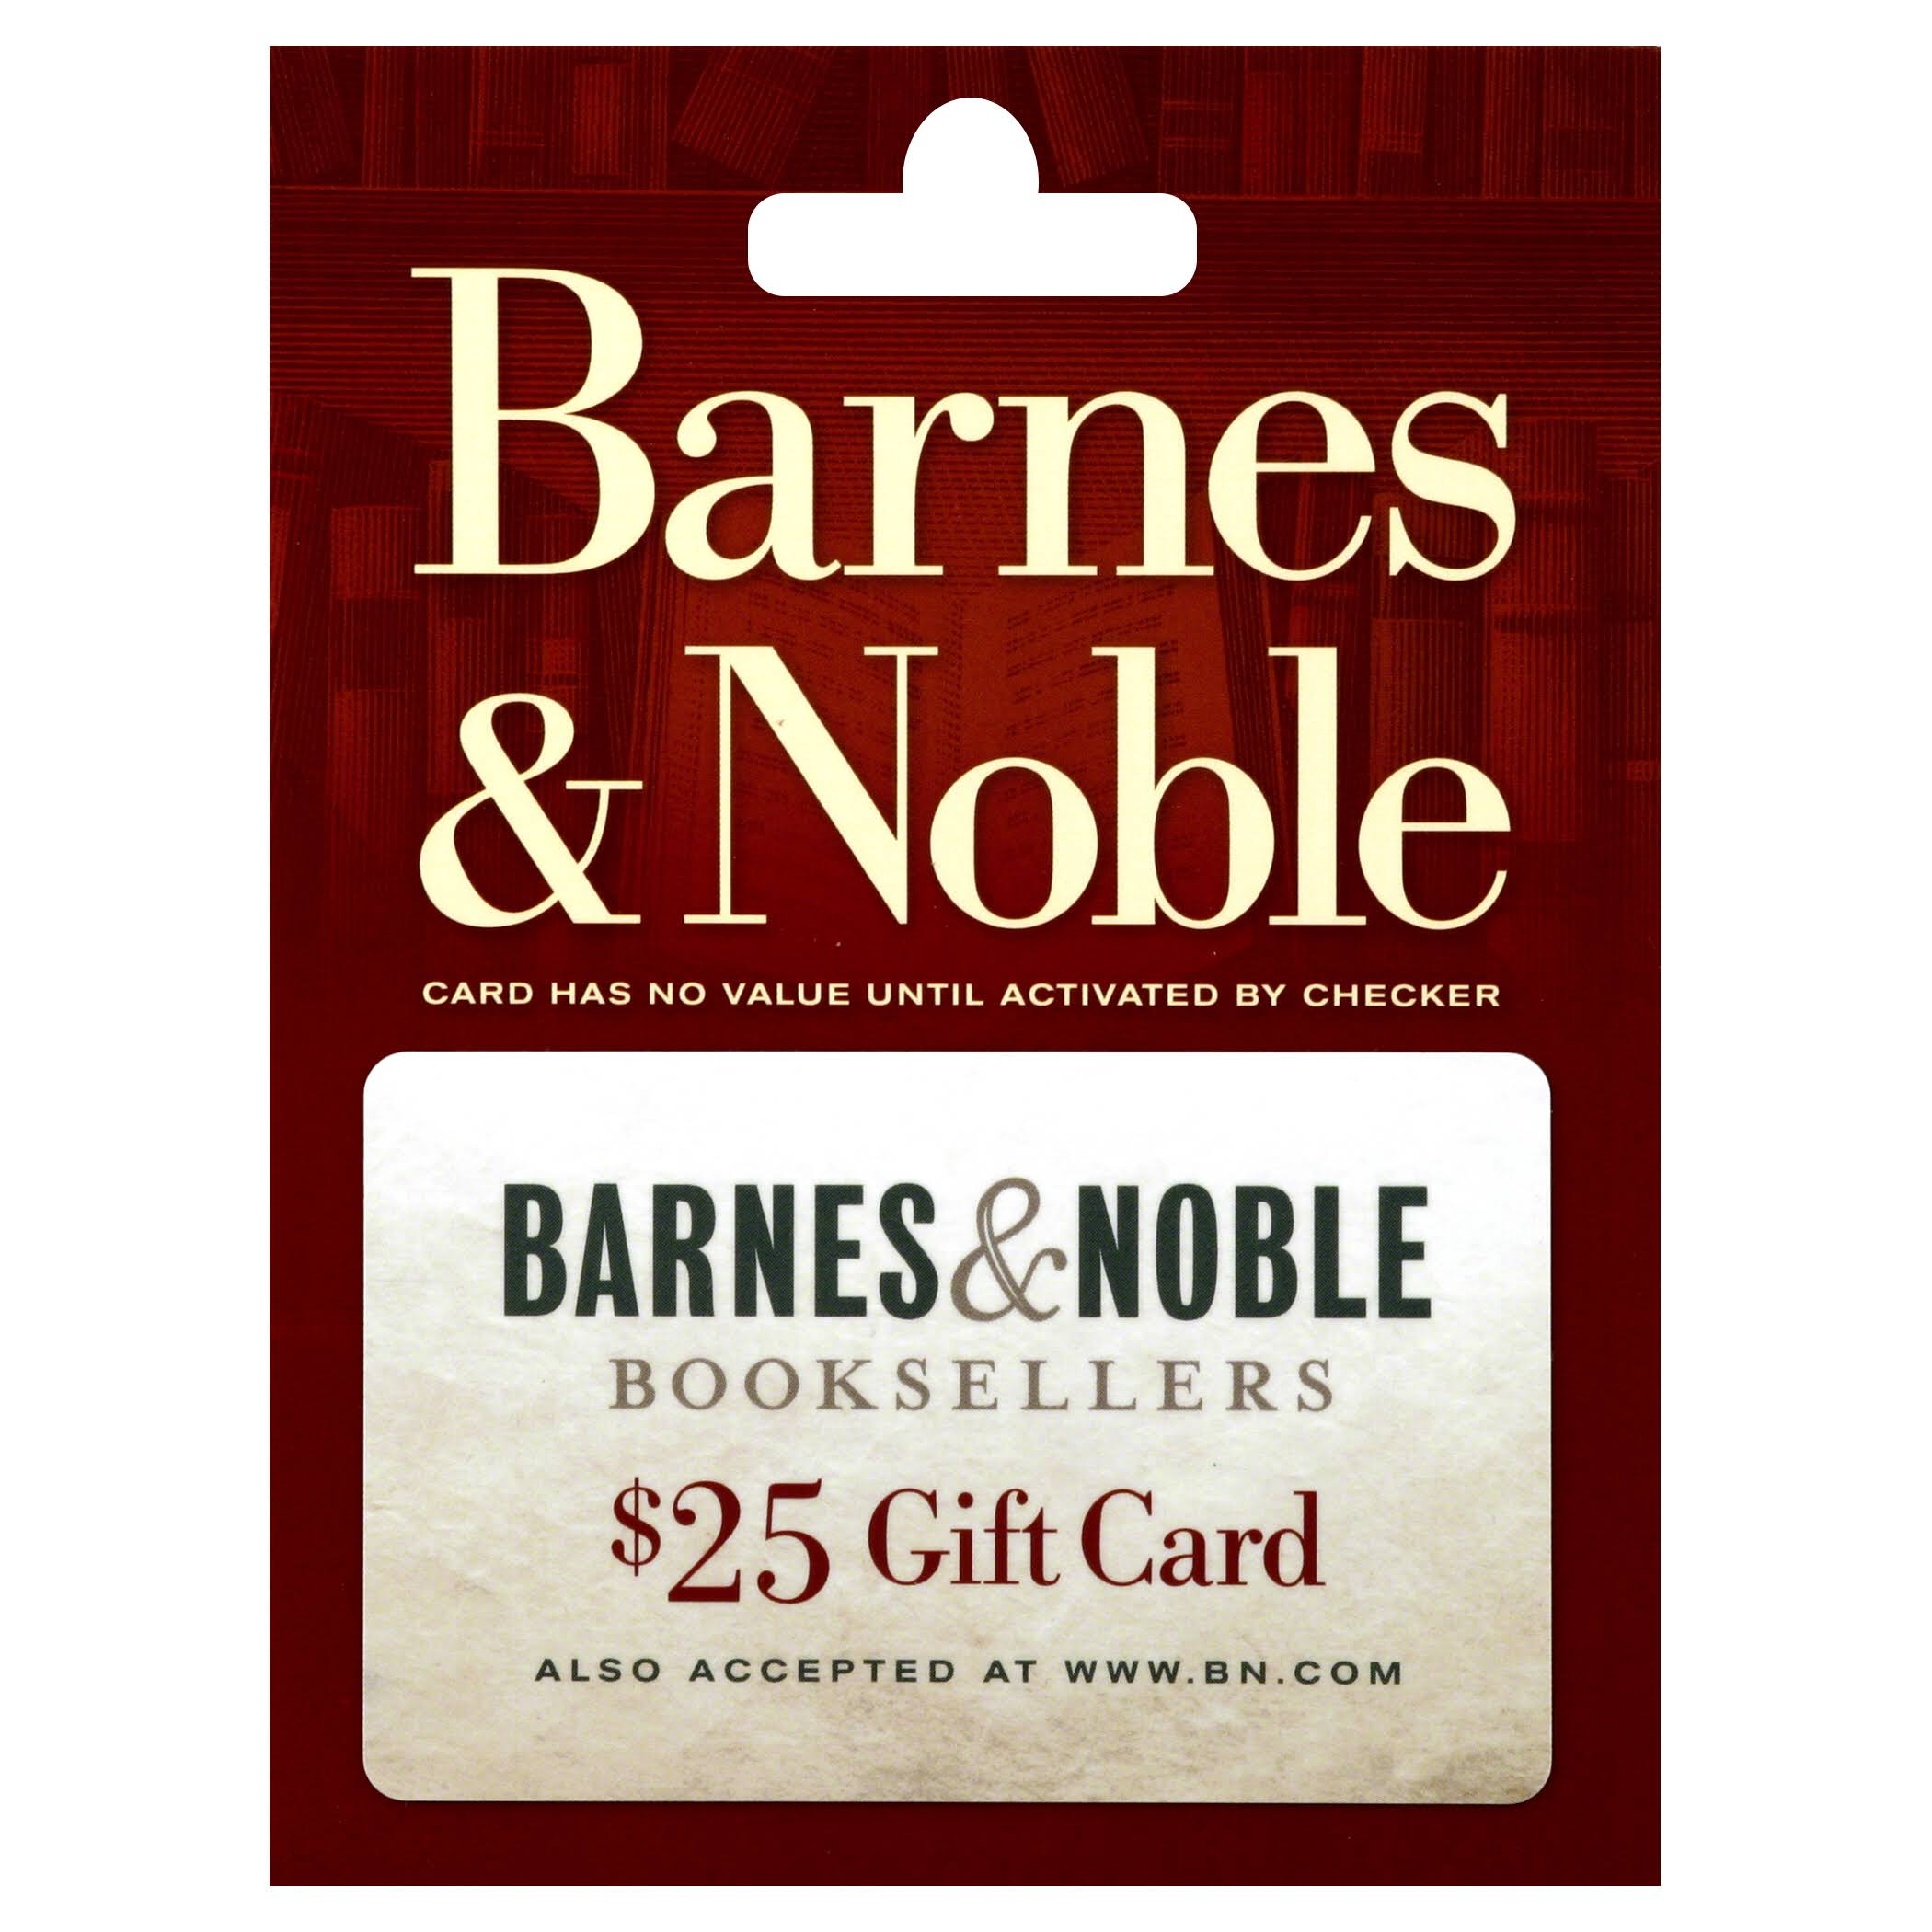 Barnes and Noble Gift Card - $25